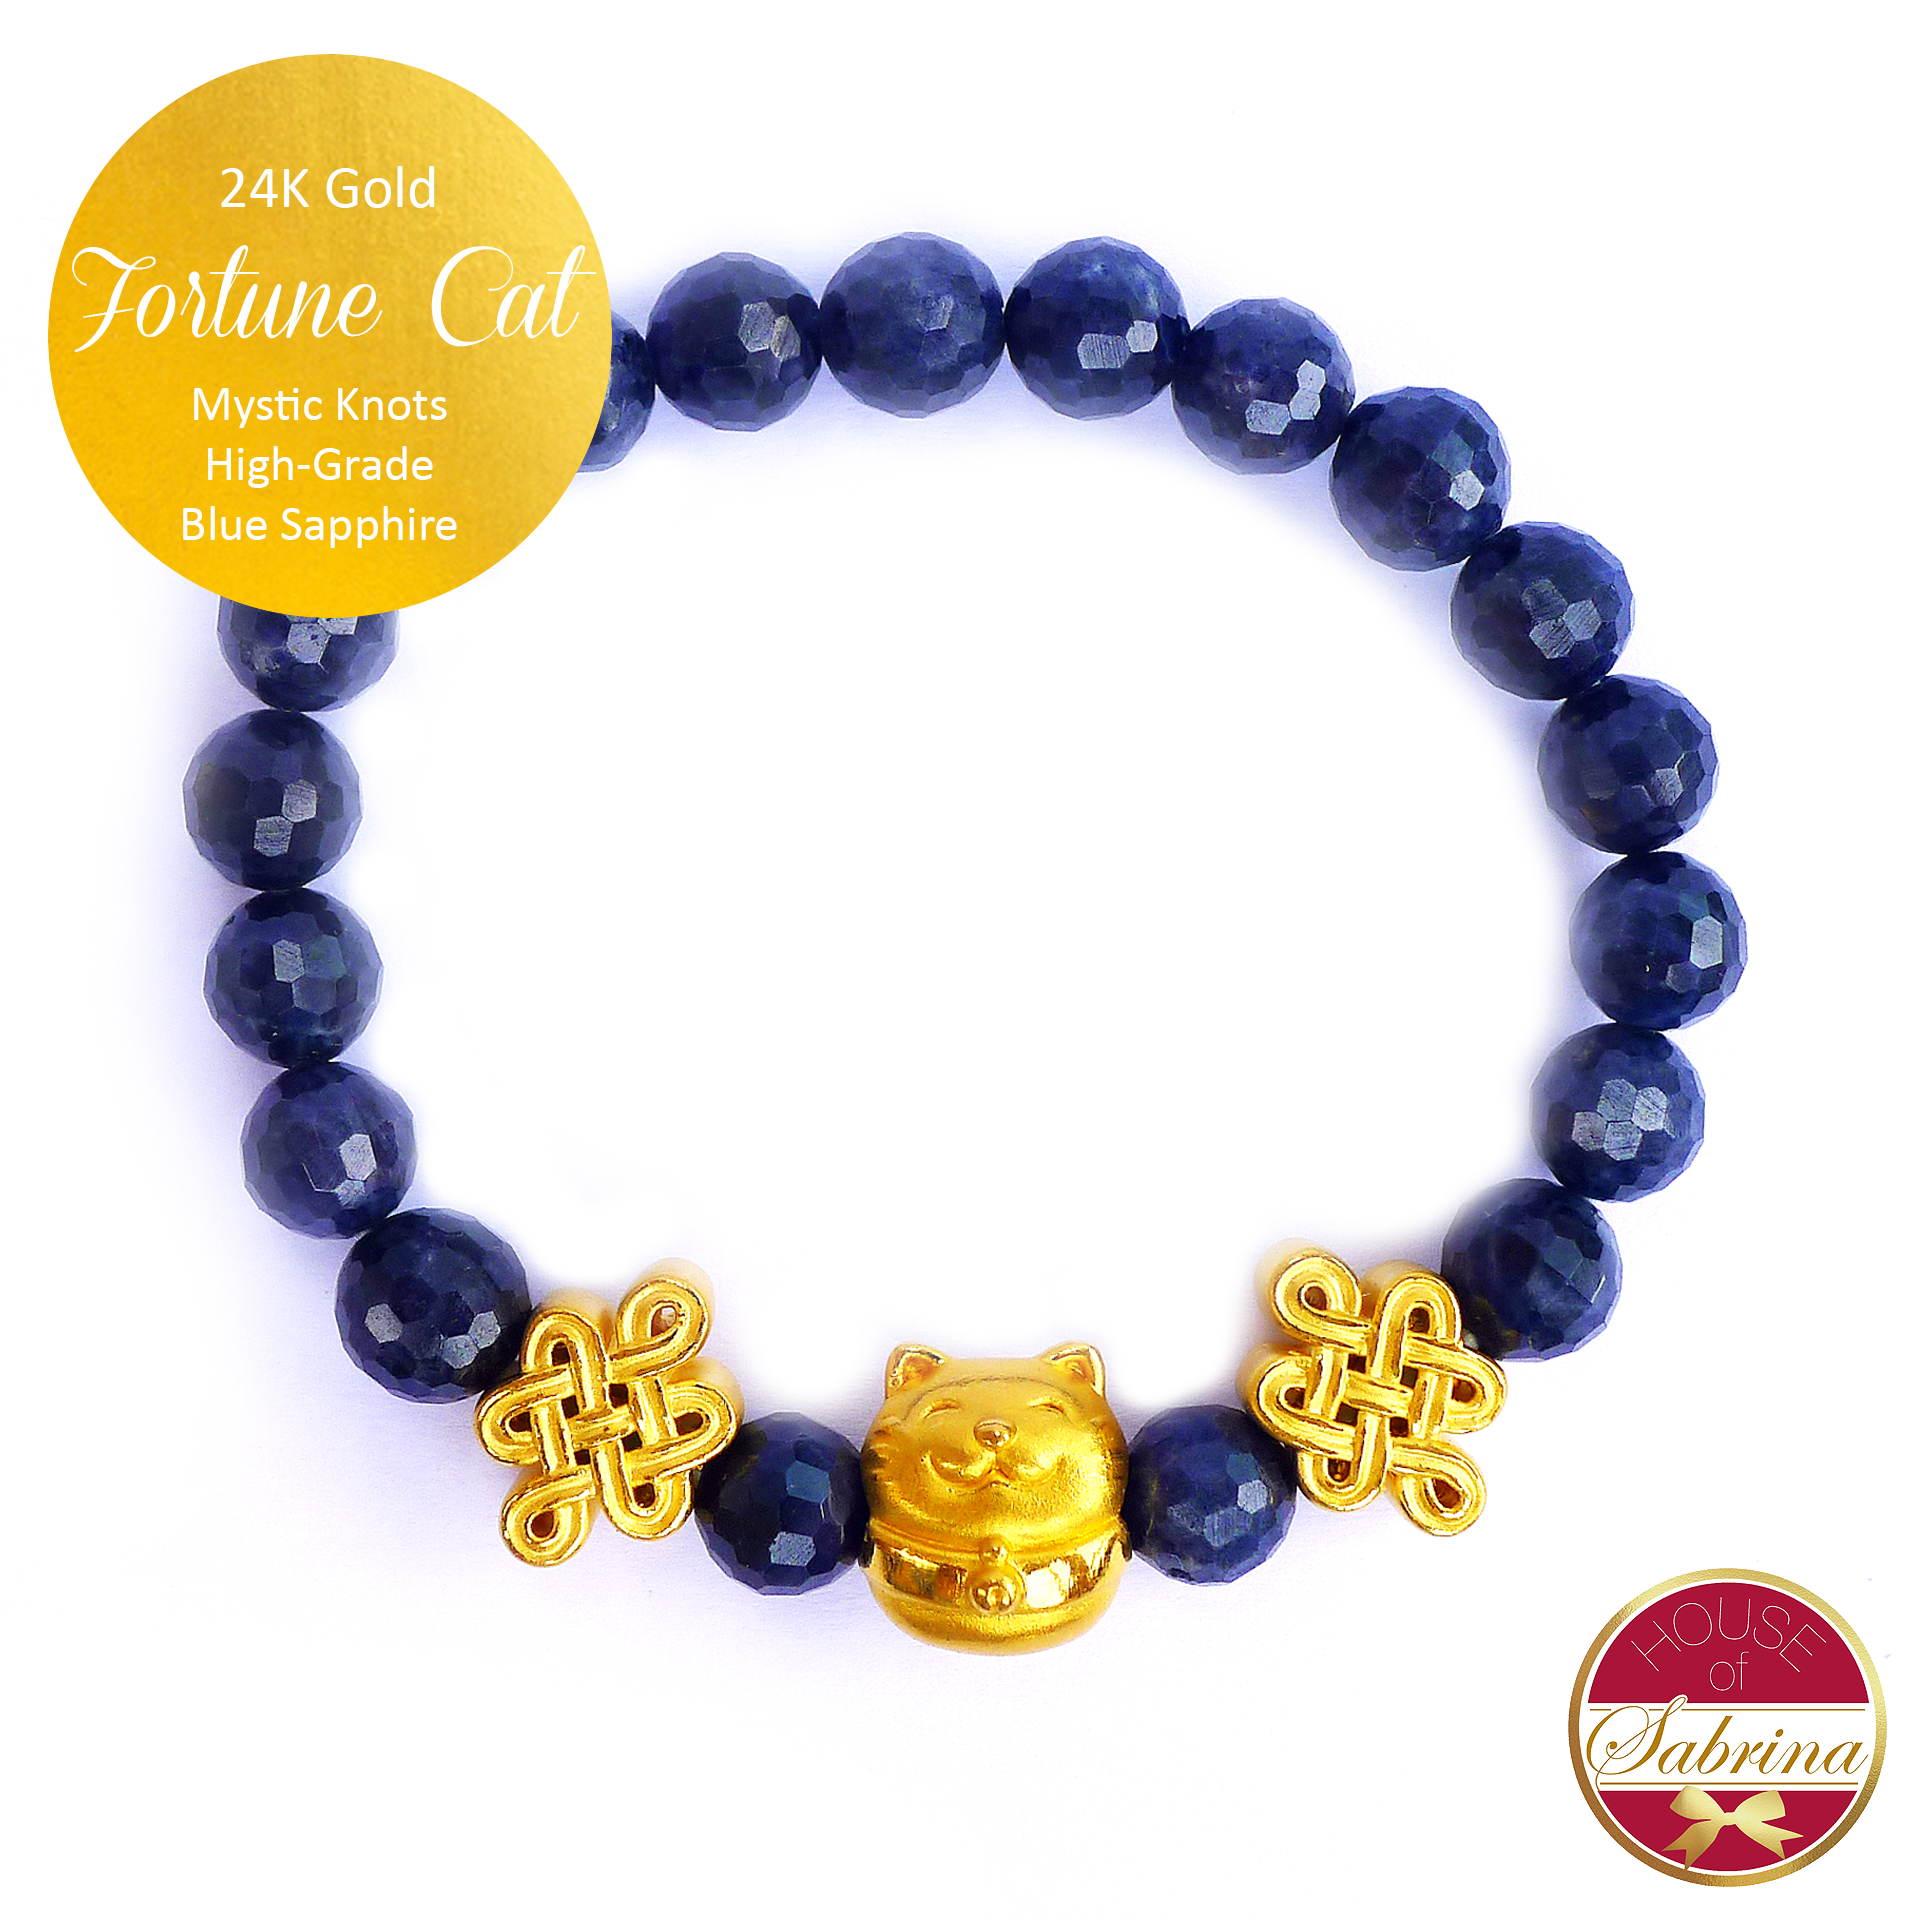 24K Gold Fortune Cat with Mystic Knots in High Grade Blue Sapphire Gemstone Bracelet